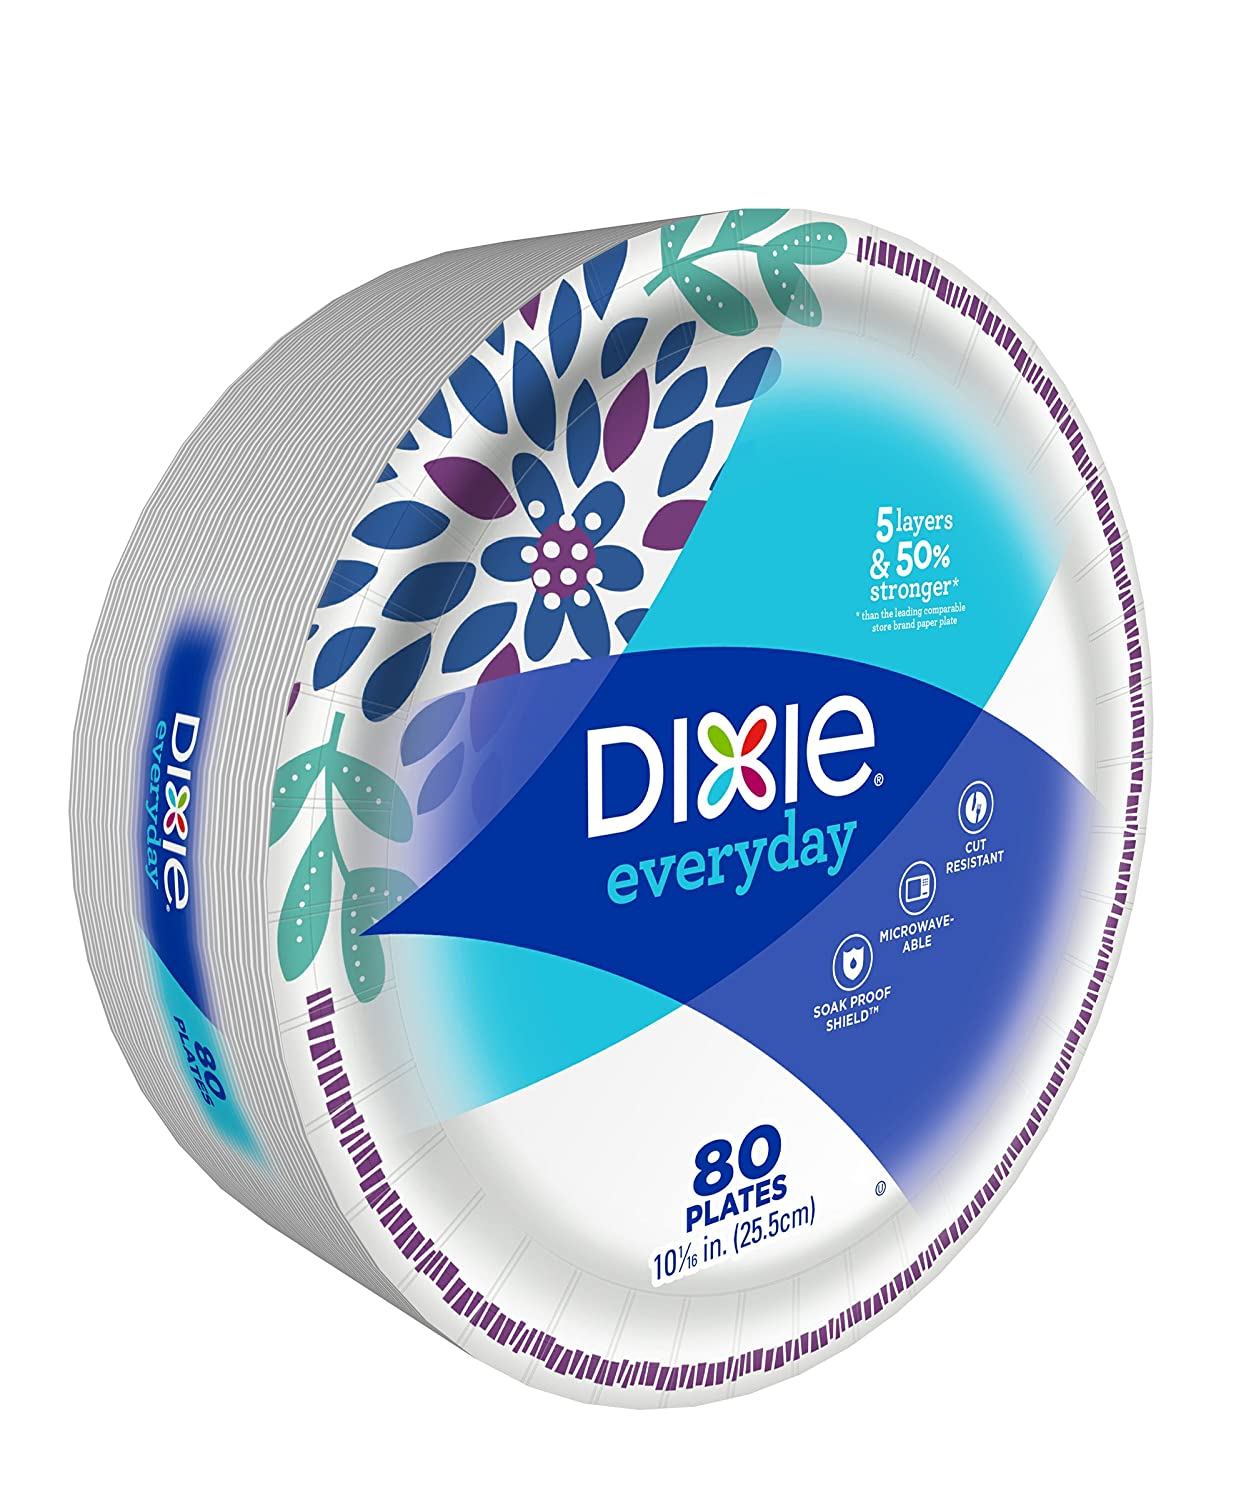 10 1//16 inches Dixie Everyday Paper Plates - Pack of 80 Count Dinner Size